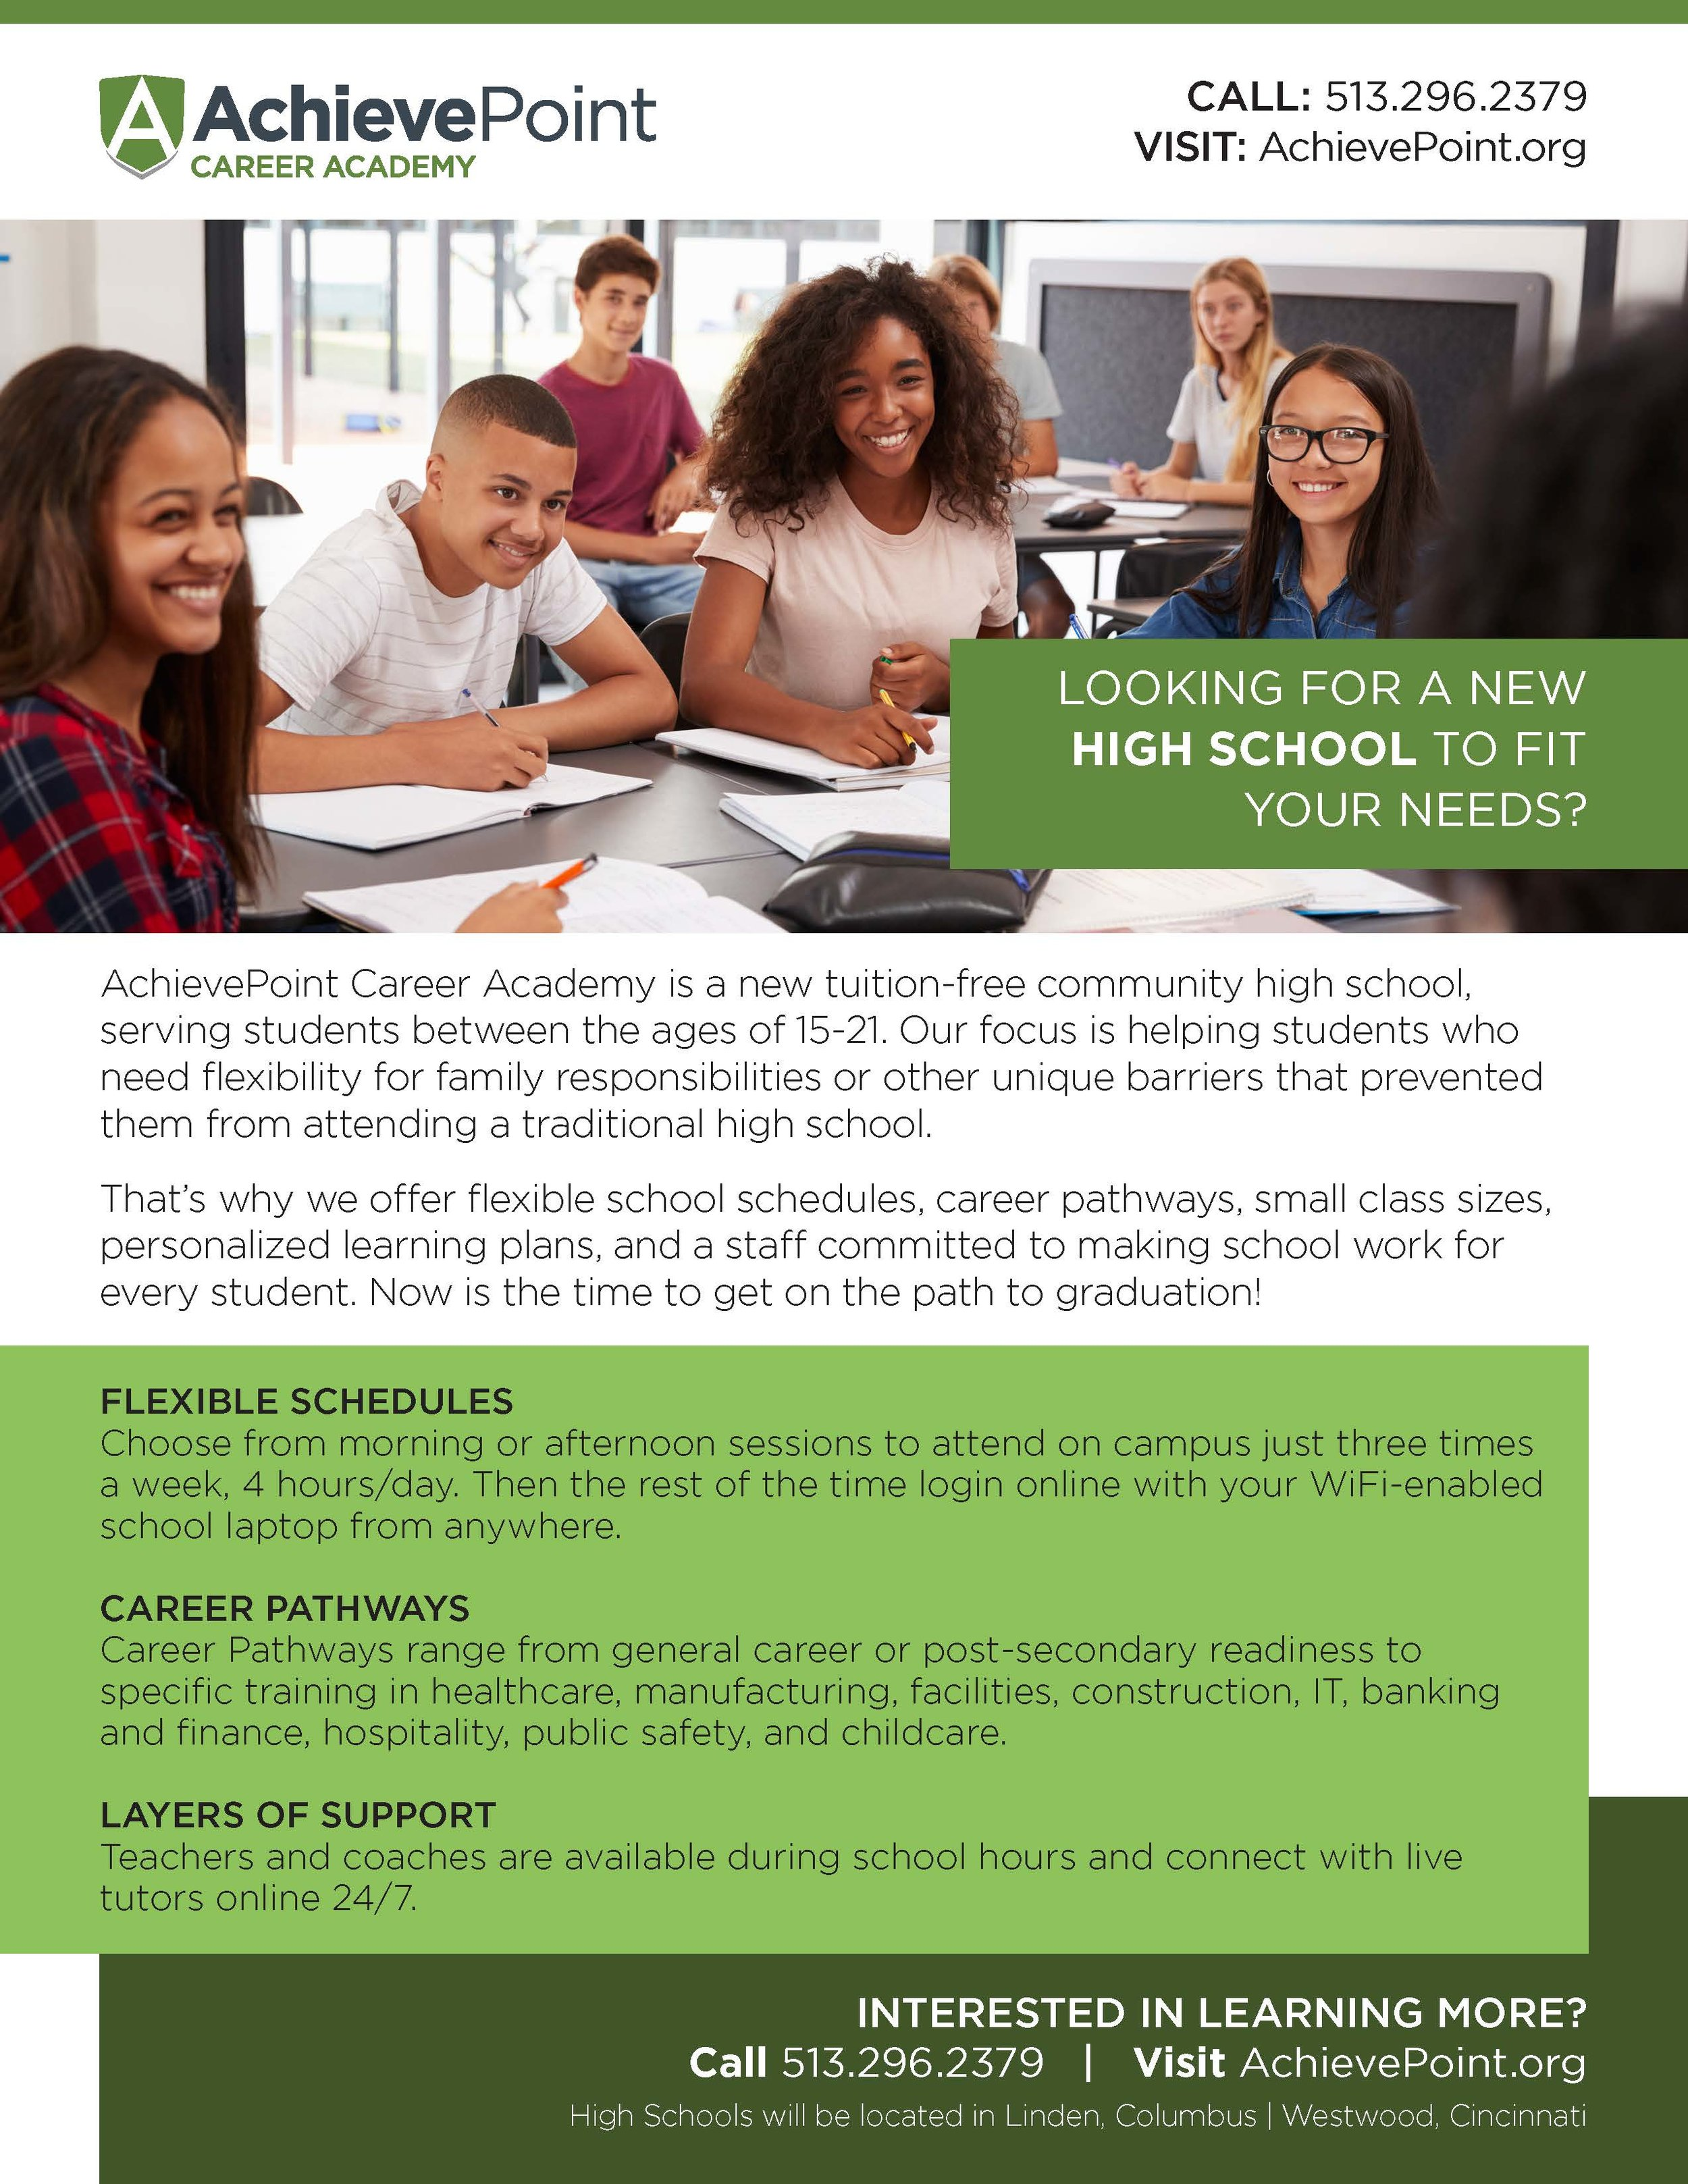 AchievePoint Overview Flyer 5.2018.jpg